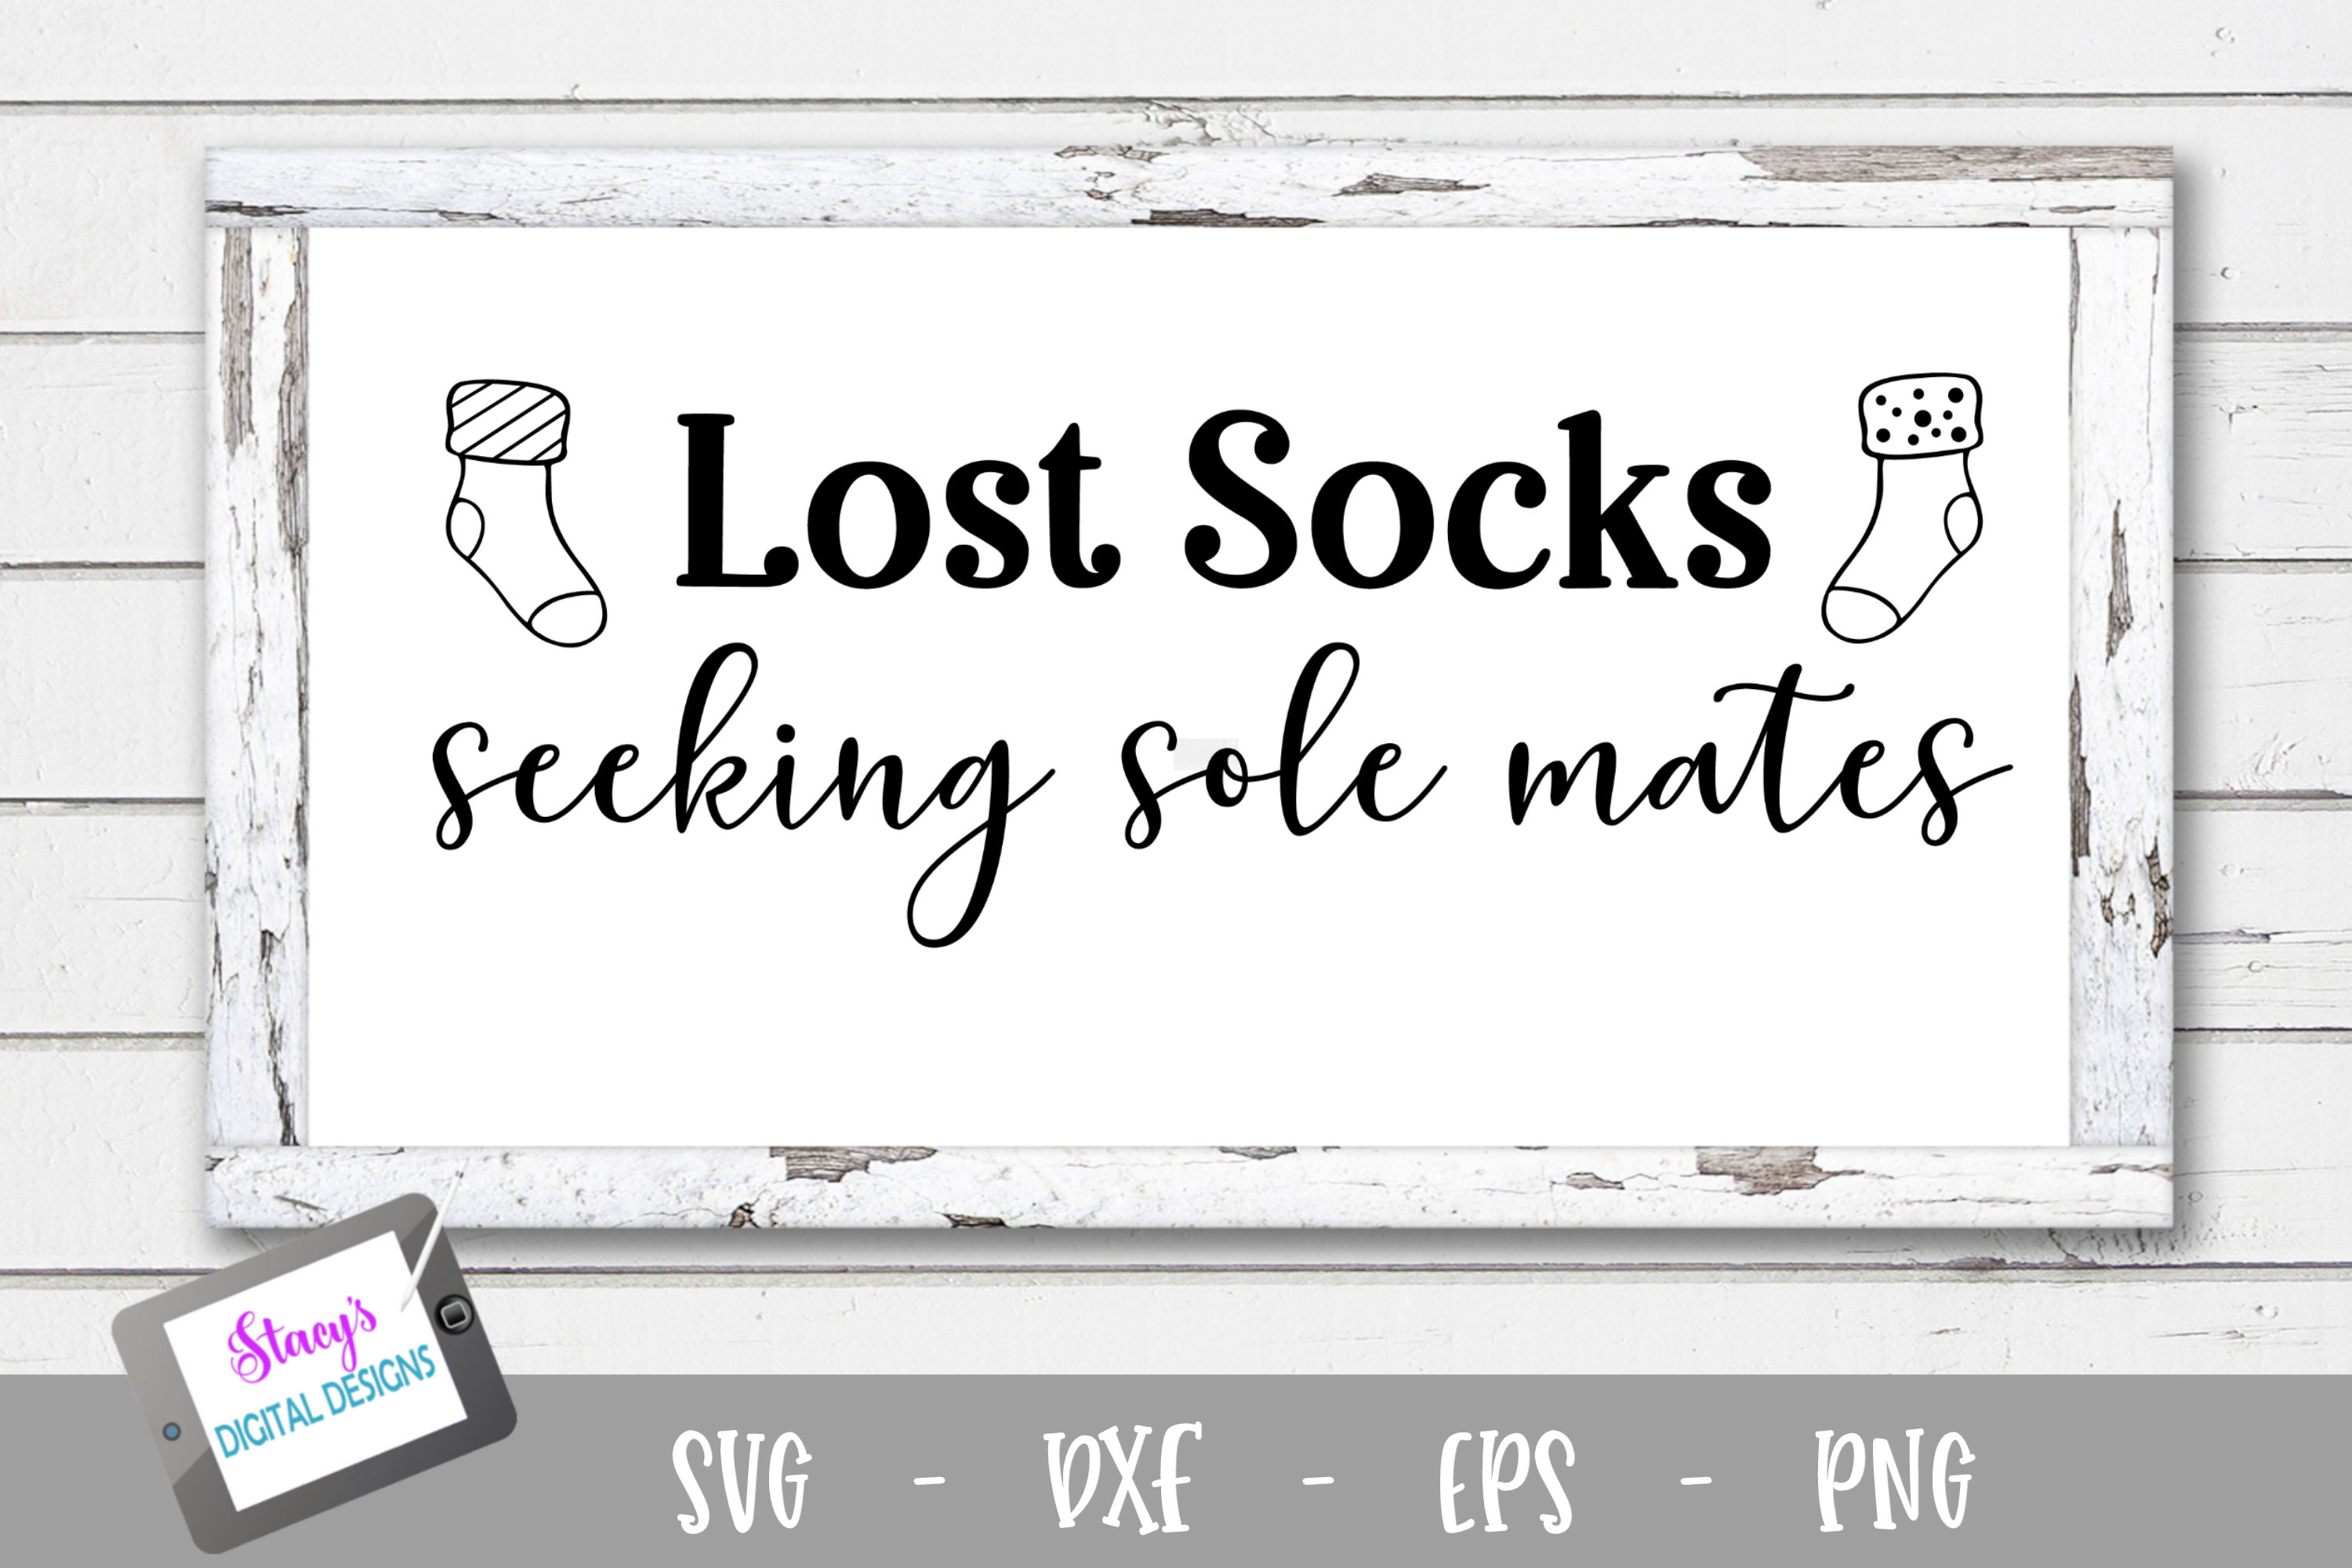 Download Free Lost Socks Seeking Sole Mates Graphic By Stacysdigitaldesigns for Cricut Explore, Silhouette and other cutting machines.